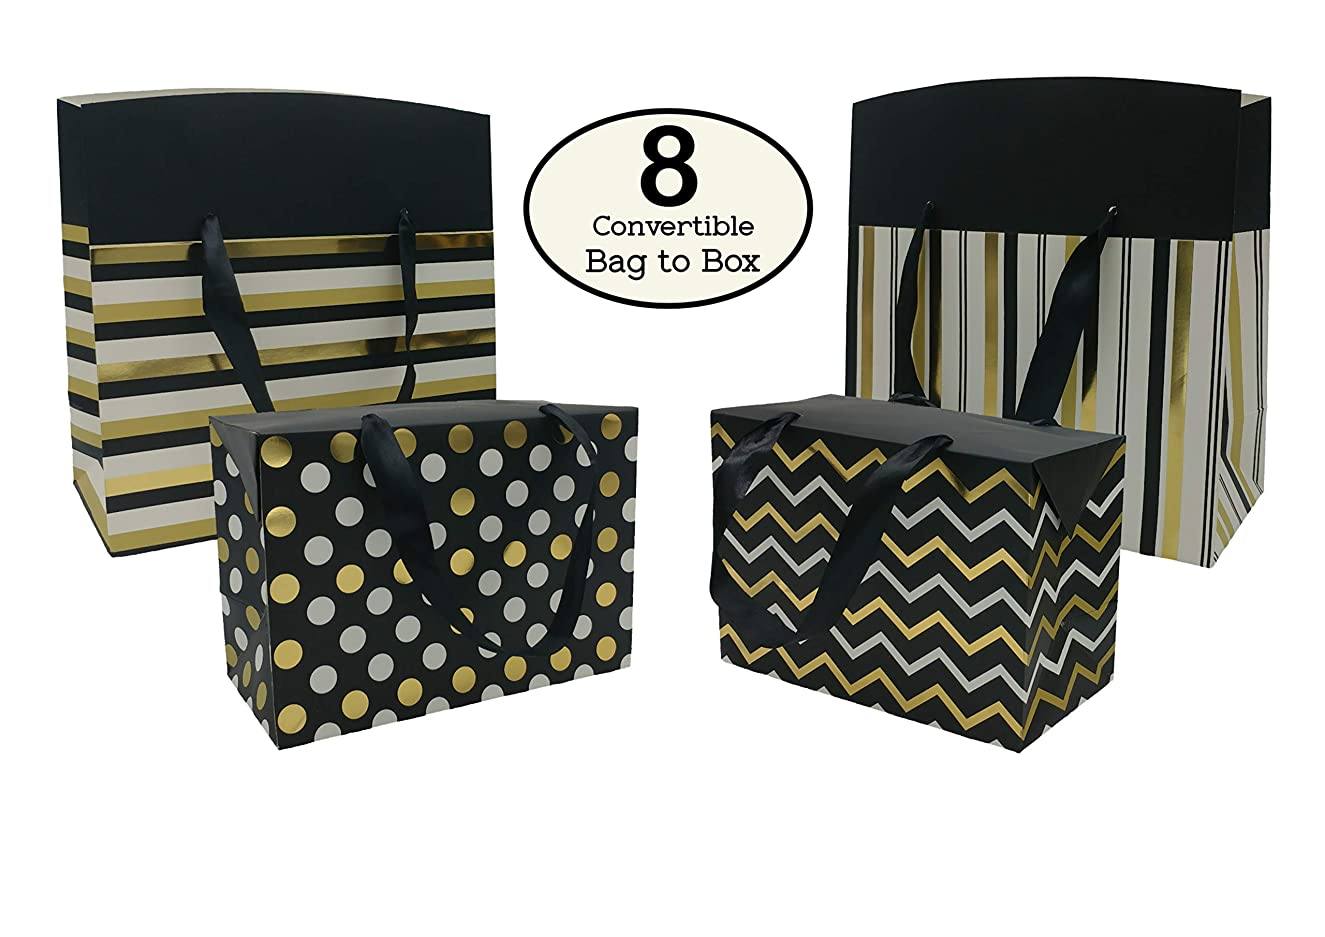 Gift Bags or Gift Boxes, Gold and Silver Polka Dots, Chevron and Stripes Design - Perfect for Party Favor Bags, Goody Bags, Holiday Gift Bags, Birthday Gift Bags and Wedding Gift Bags